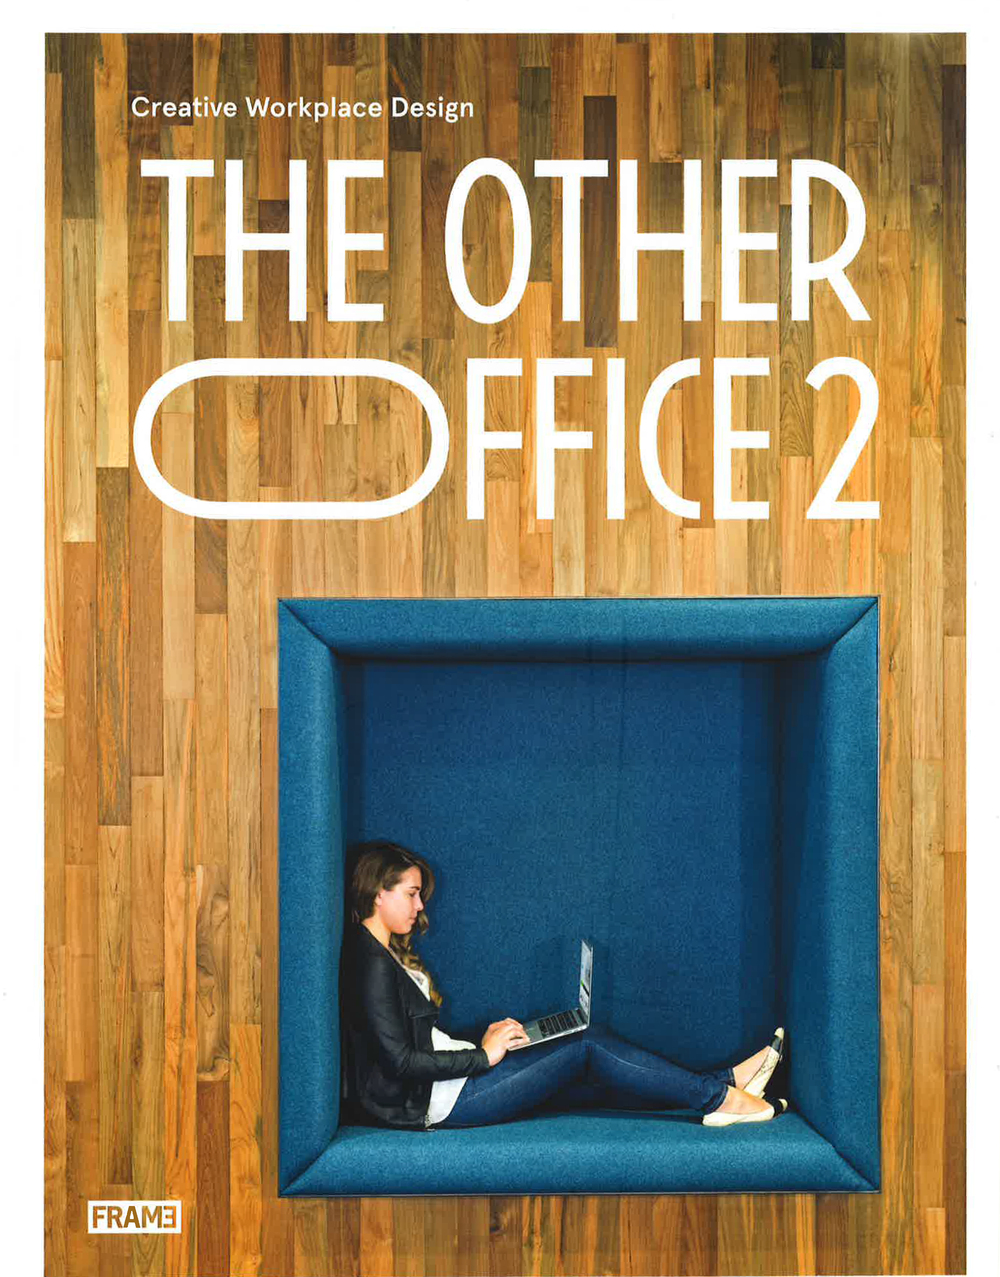 TheOtherOffice2+2016+Lana+Chair.jpg